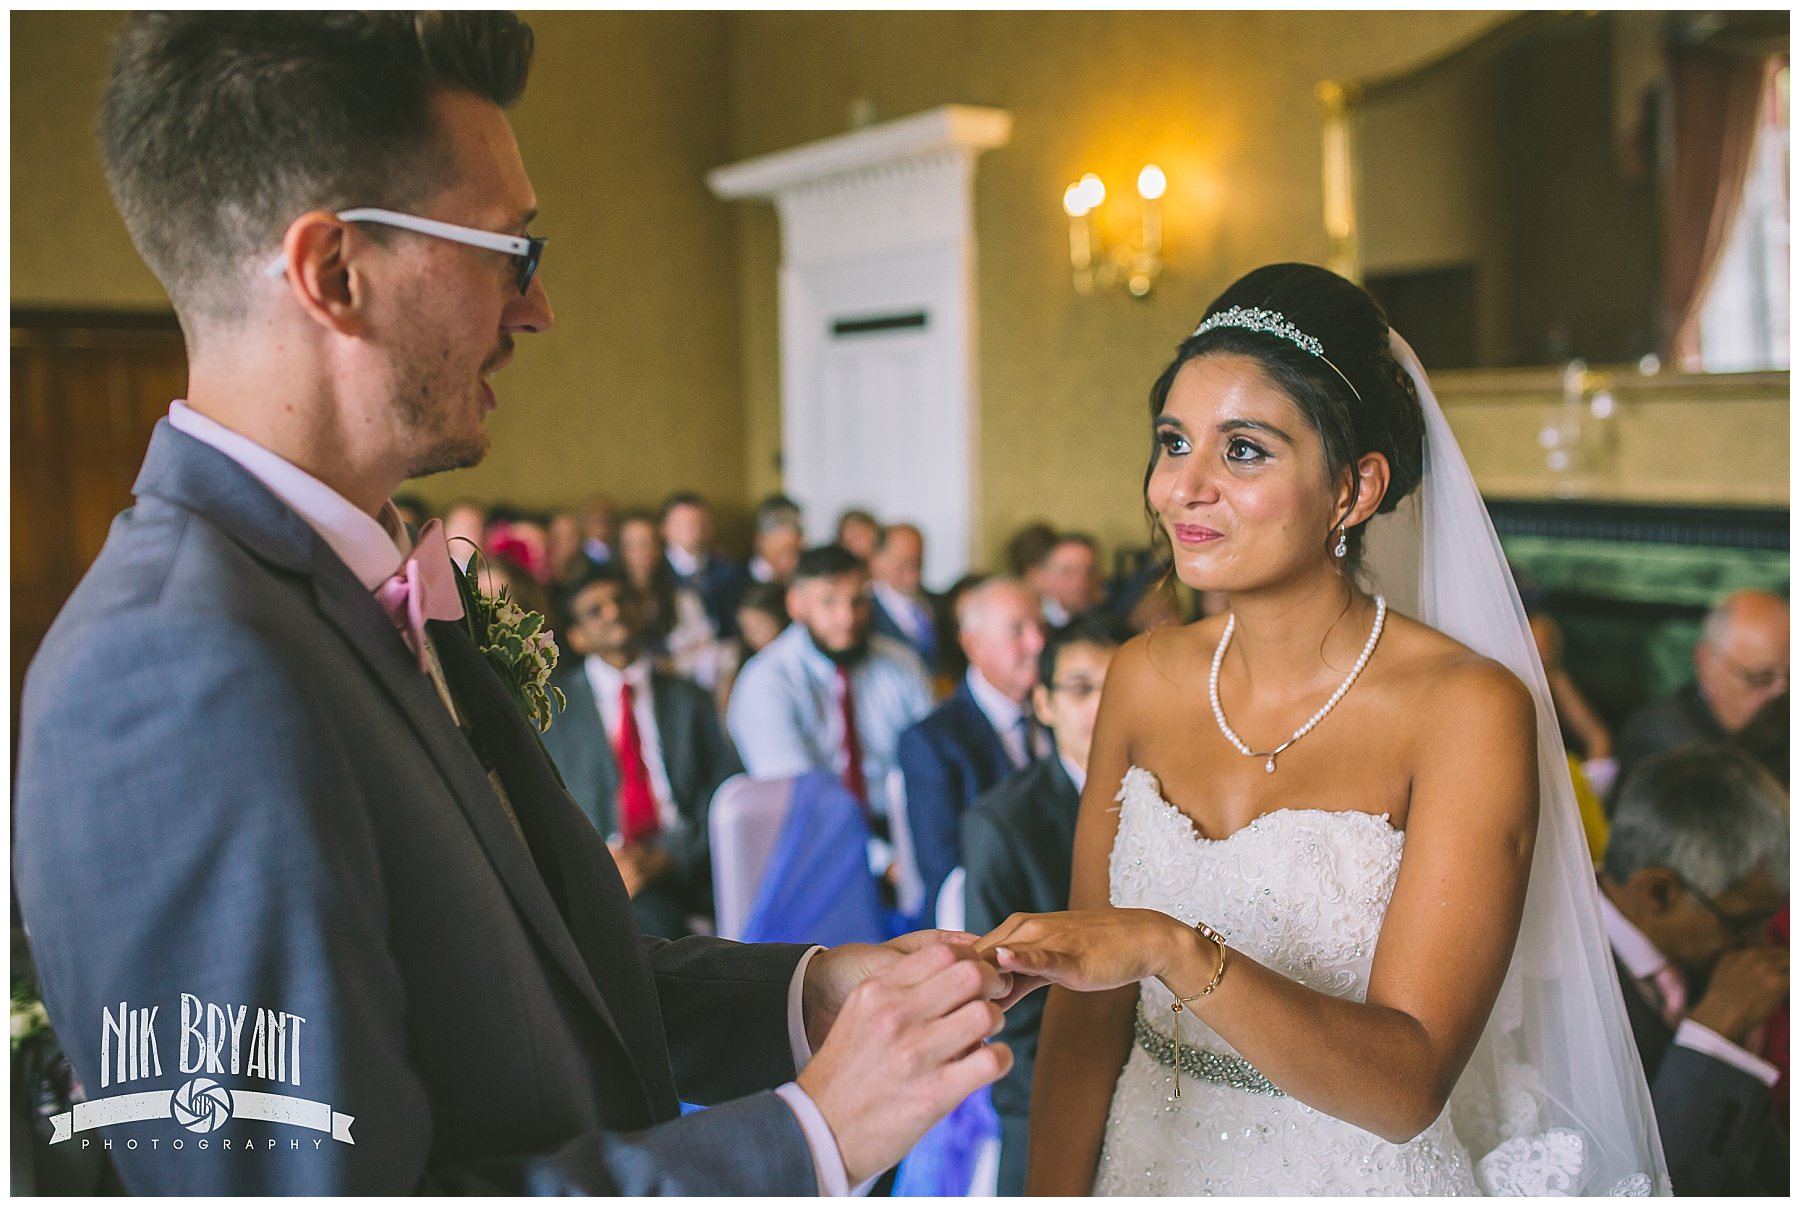 Ring exchange at shrigley hall wedding ceremony